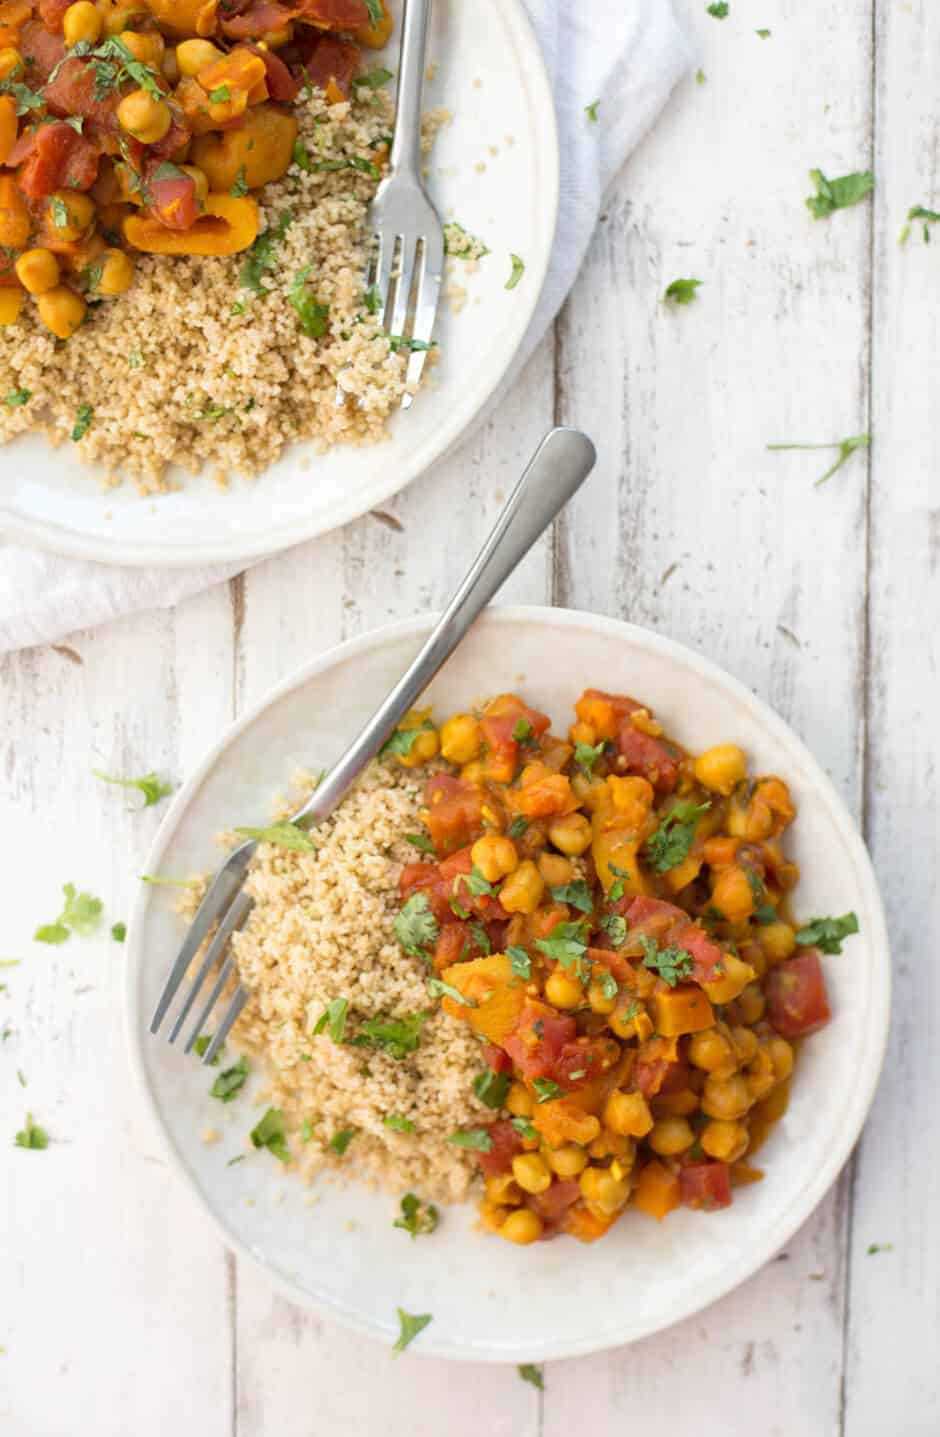 Slow Cooker Chickpea Tangine! You've gotta try this amazing vegan crock-pot meal. Packed with flavor, protein and fiber. Vegan + Gluten-Free. | www.delishknowledge.com